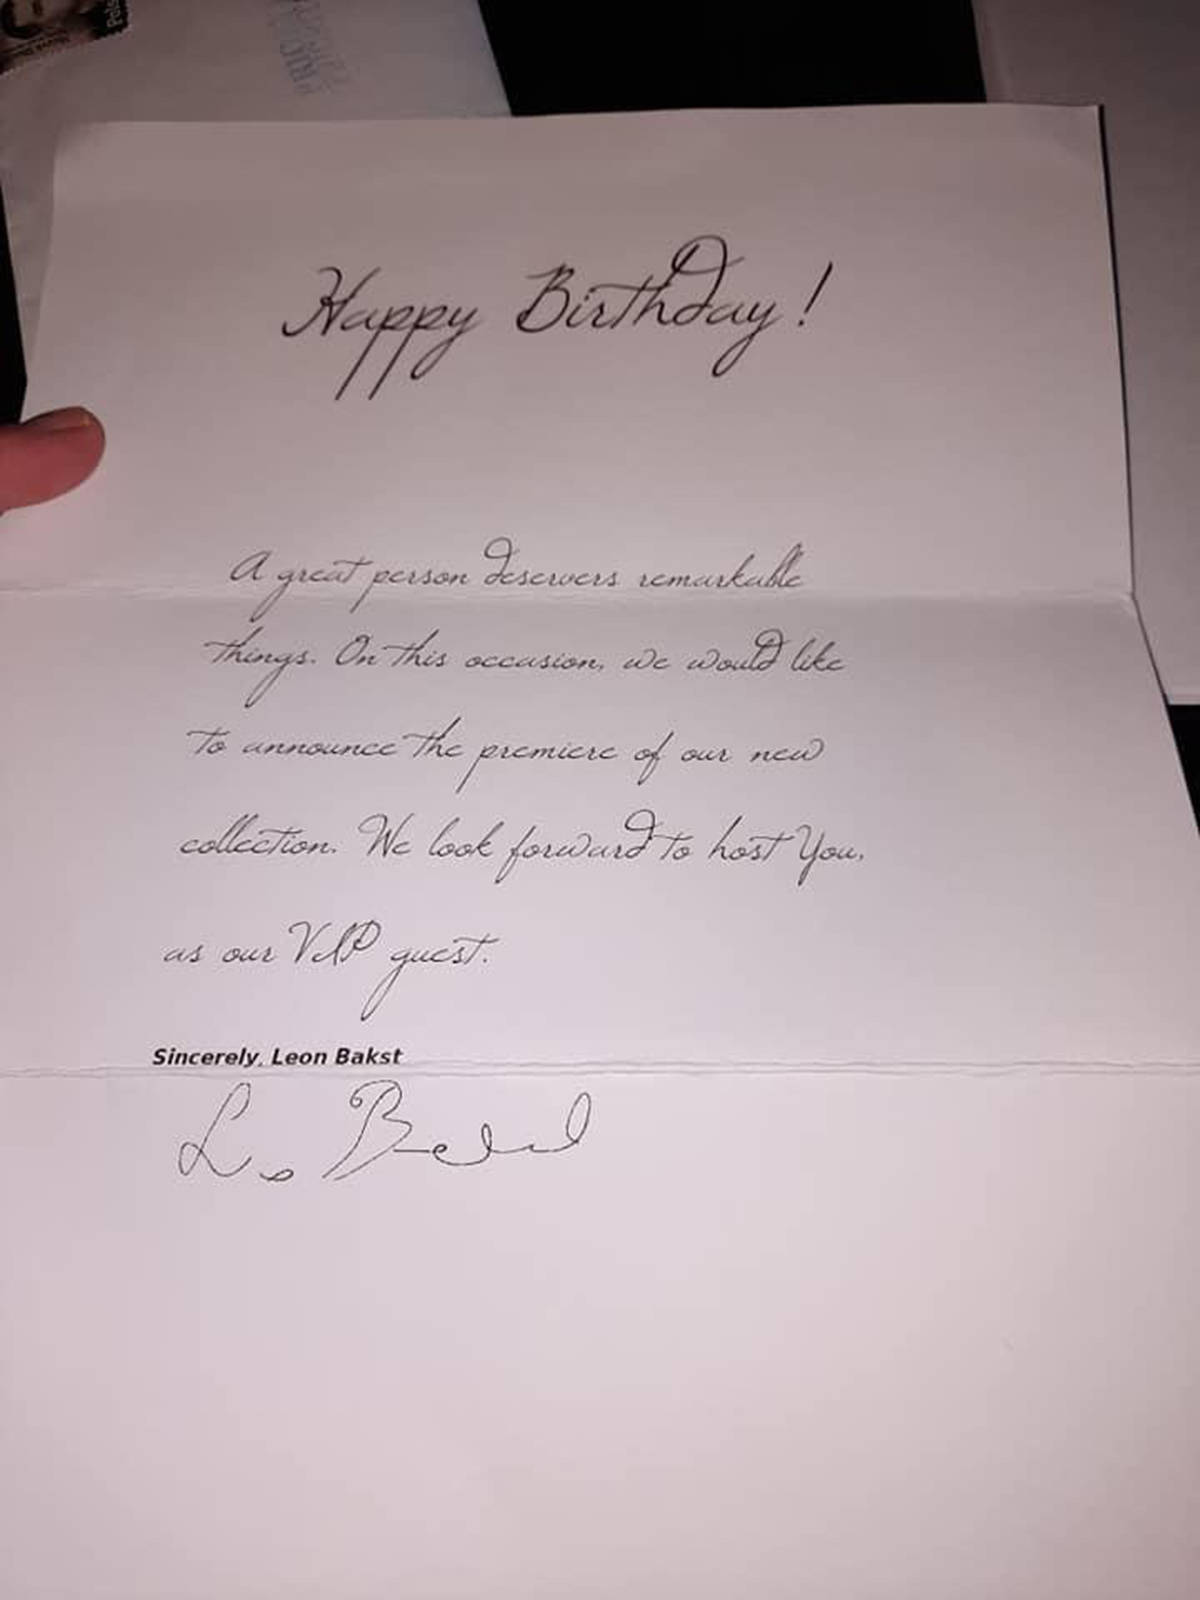 The letter from the Russian artist found in the package. (Twyla Mclachlan photo)